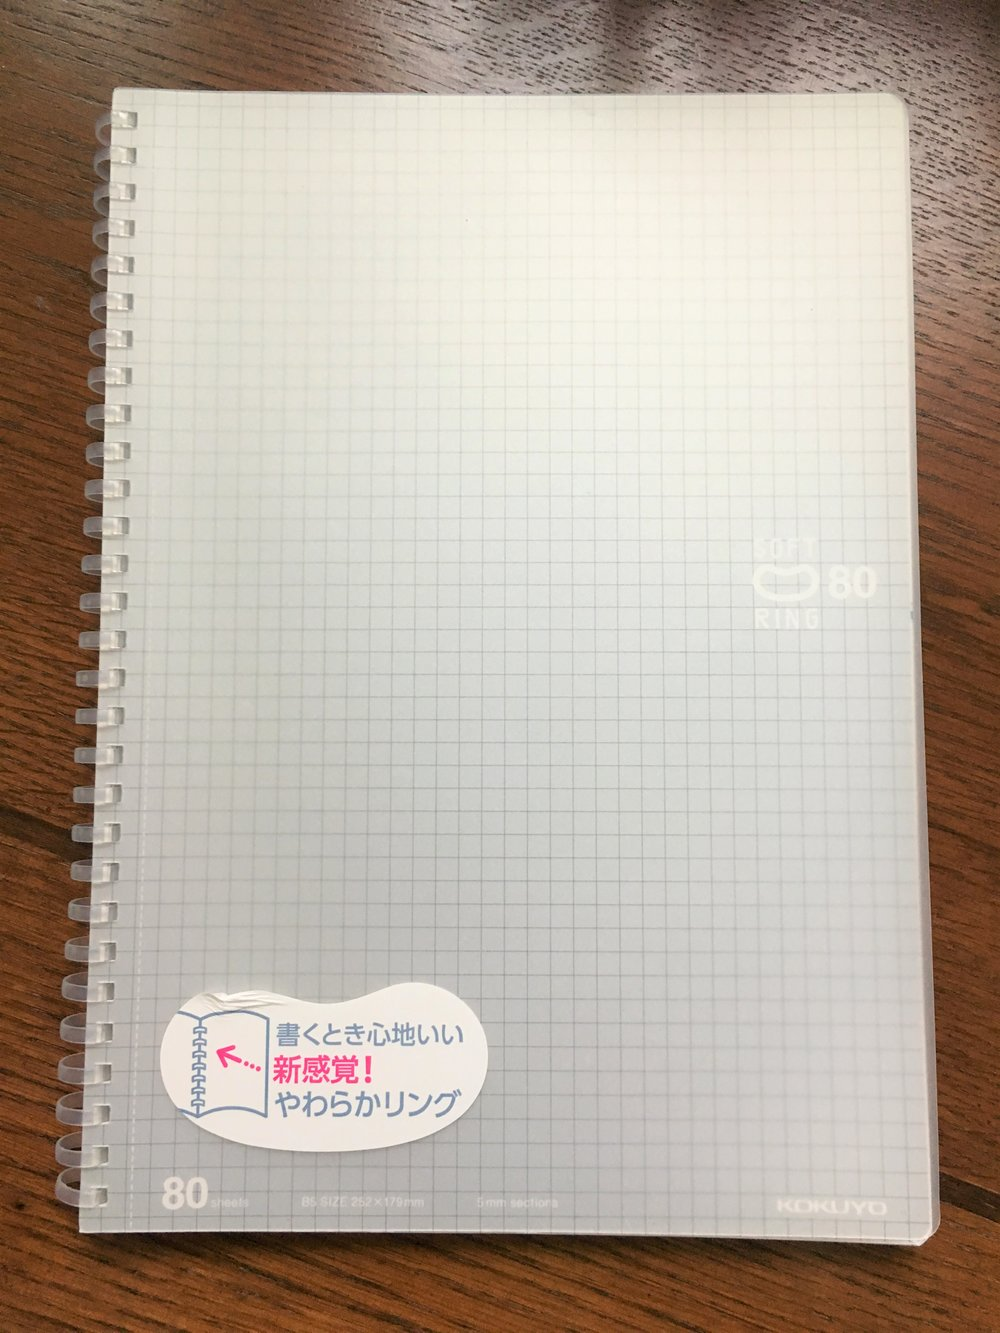 Kokuyo Soft Ring Notebook Review